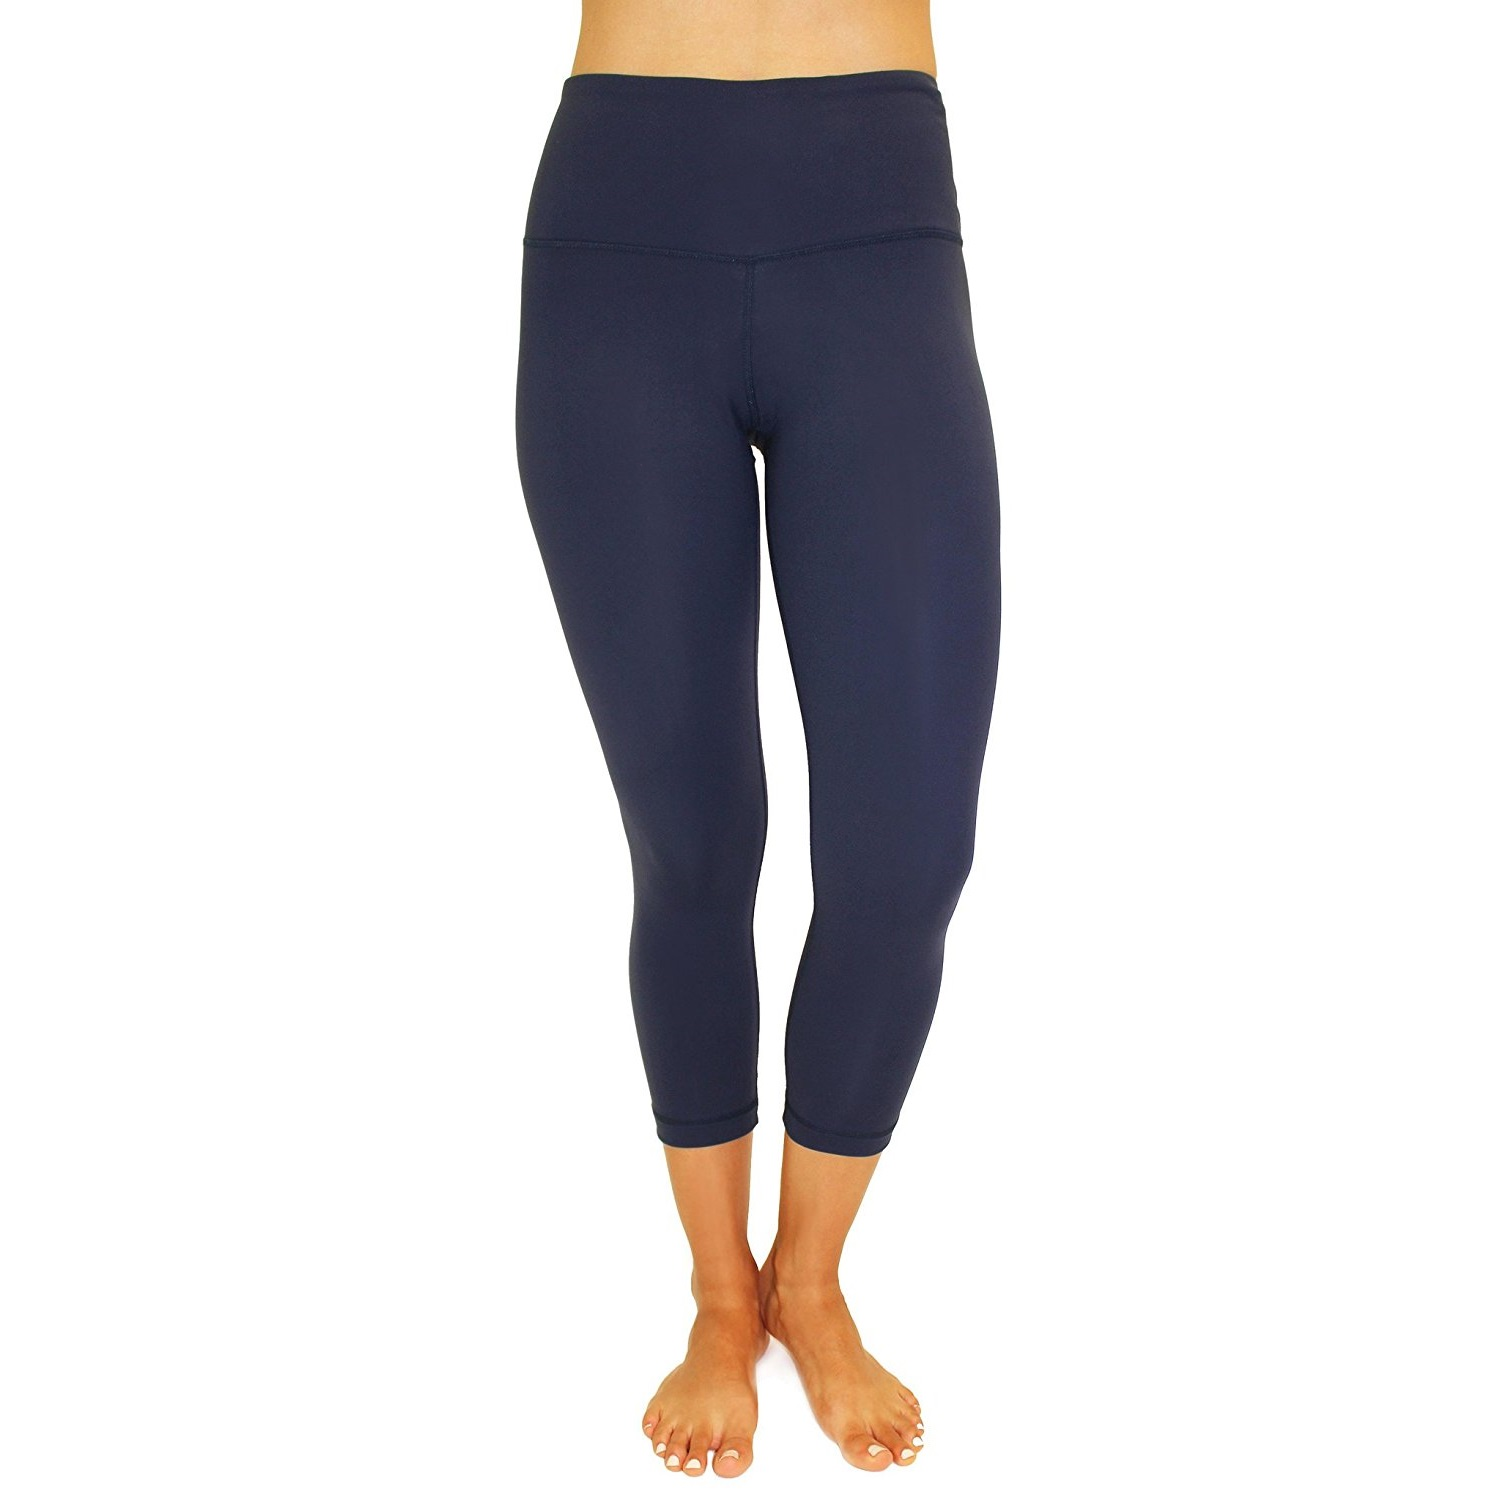 90 degree by reflex midnight navy womens yoga capri pants